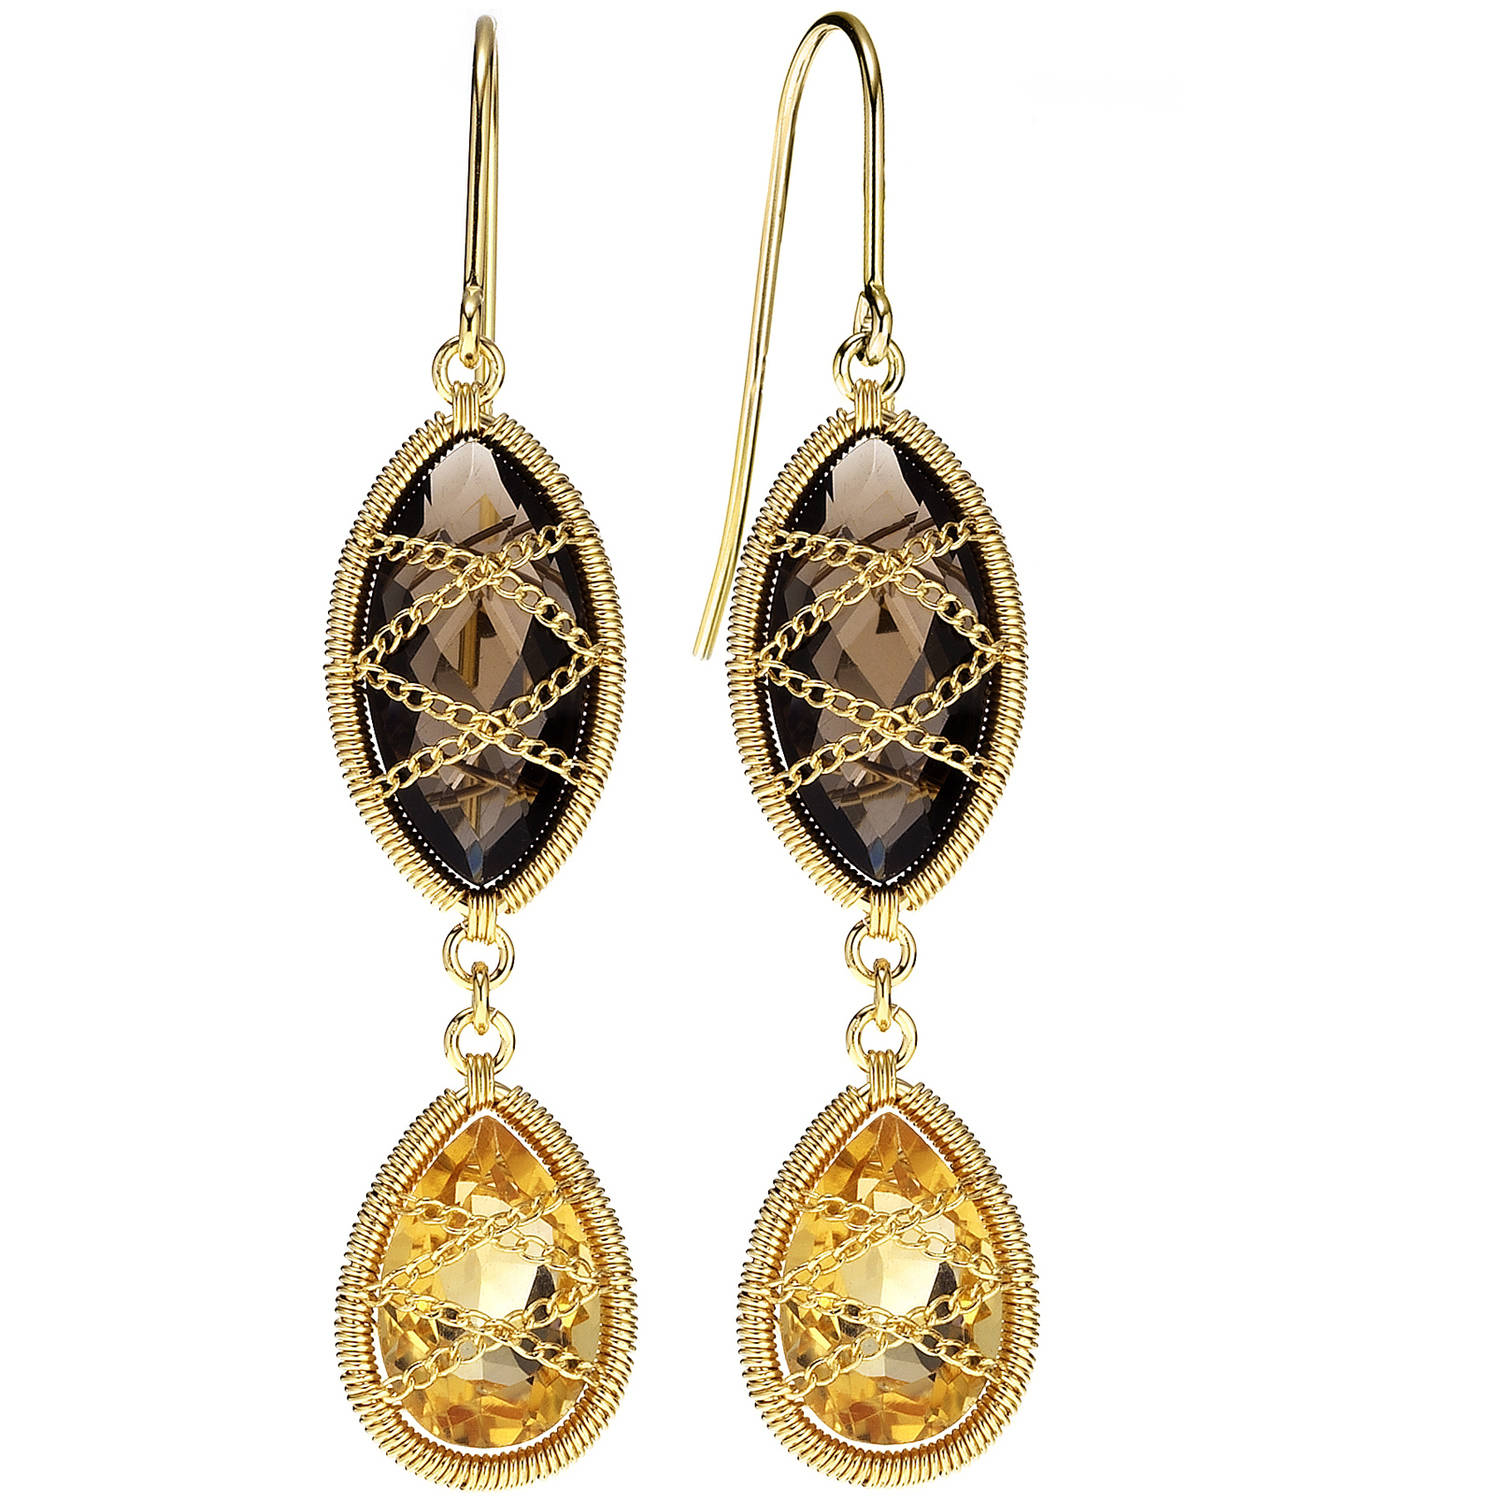 Image of 5th & Main 18kt Gold over Sterling Silver Hand-Wrapped Double Drop Smokey Quartz and Citrine Stone Earrings